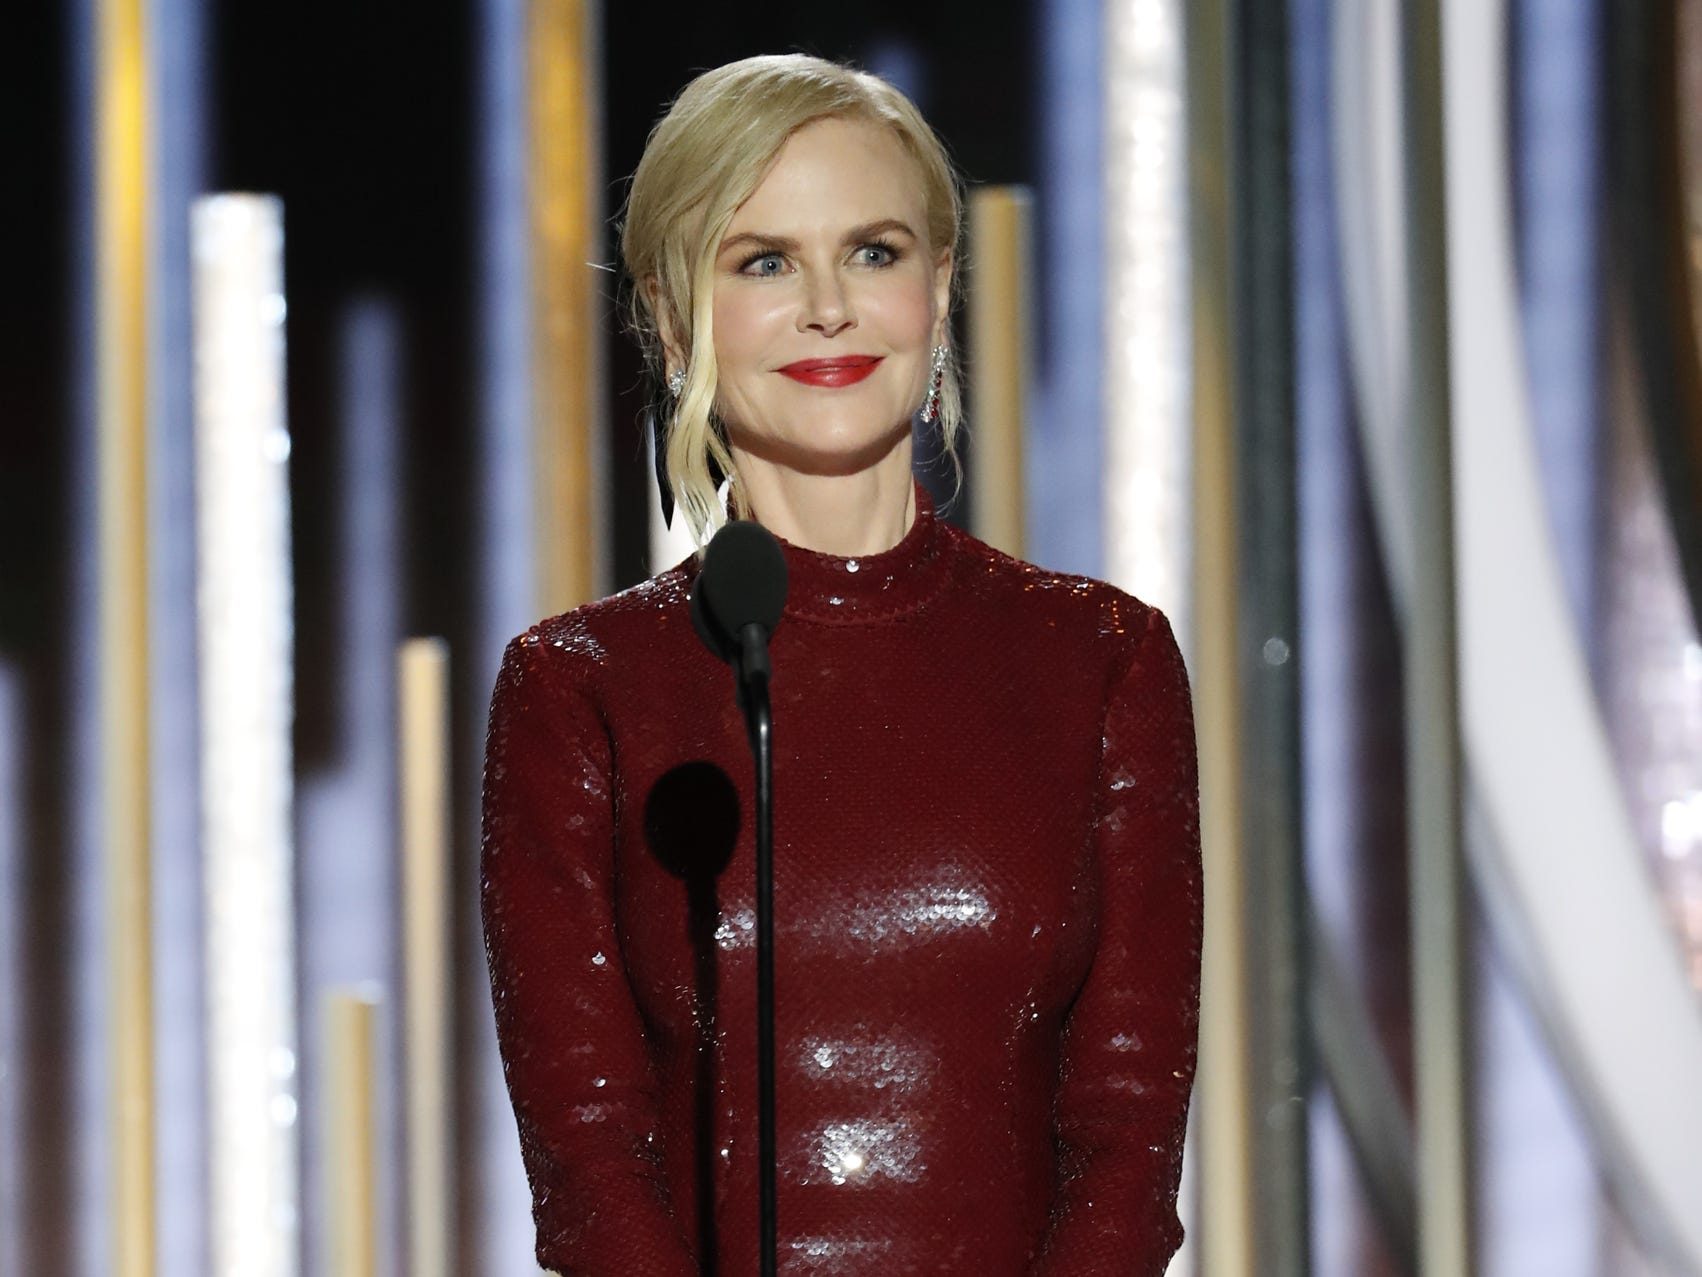 Nicole Kidman presents during the 76th Golden Globe Awards.